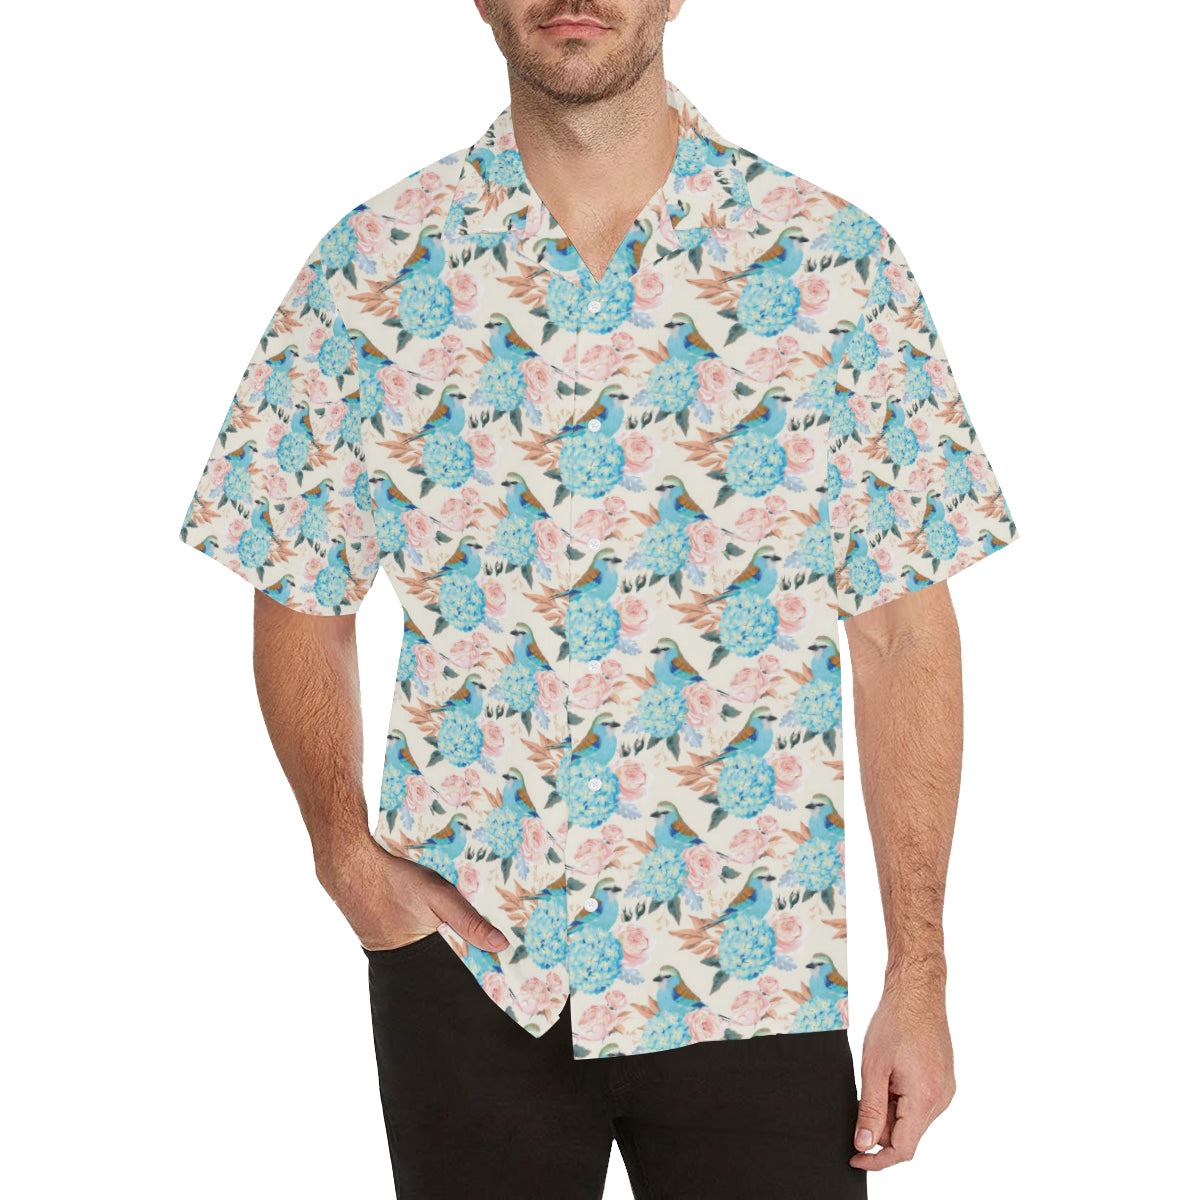 Bluebird Pattern Print Design 03 Hawaiian Shirt